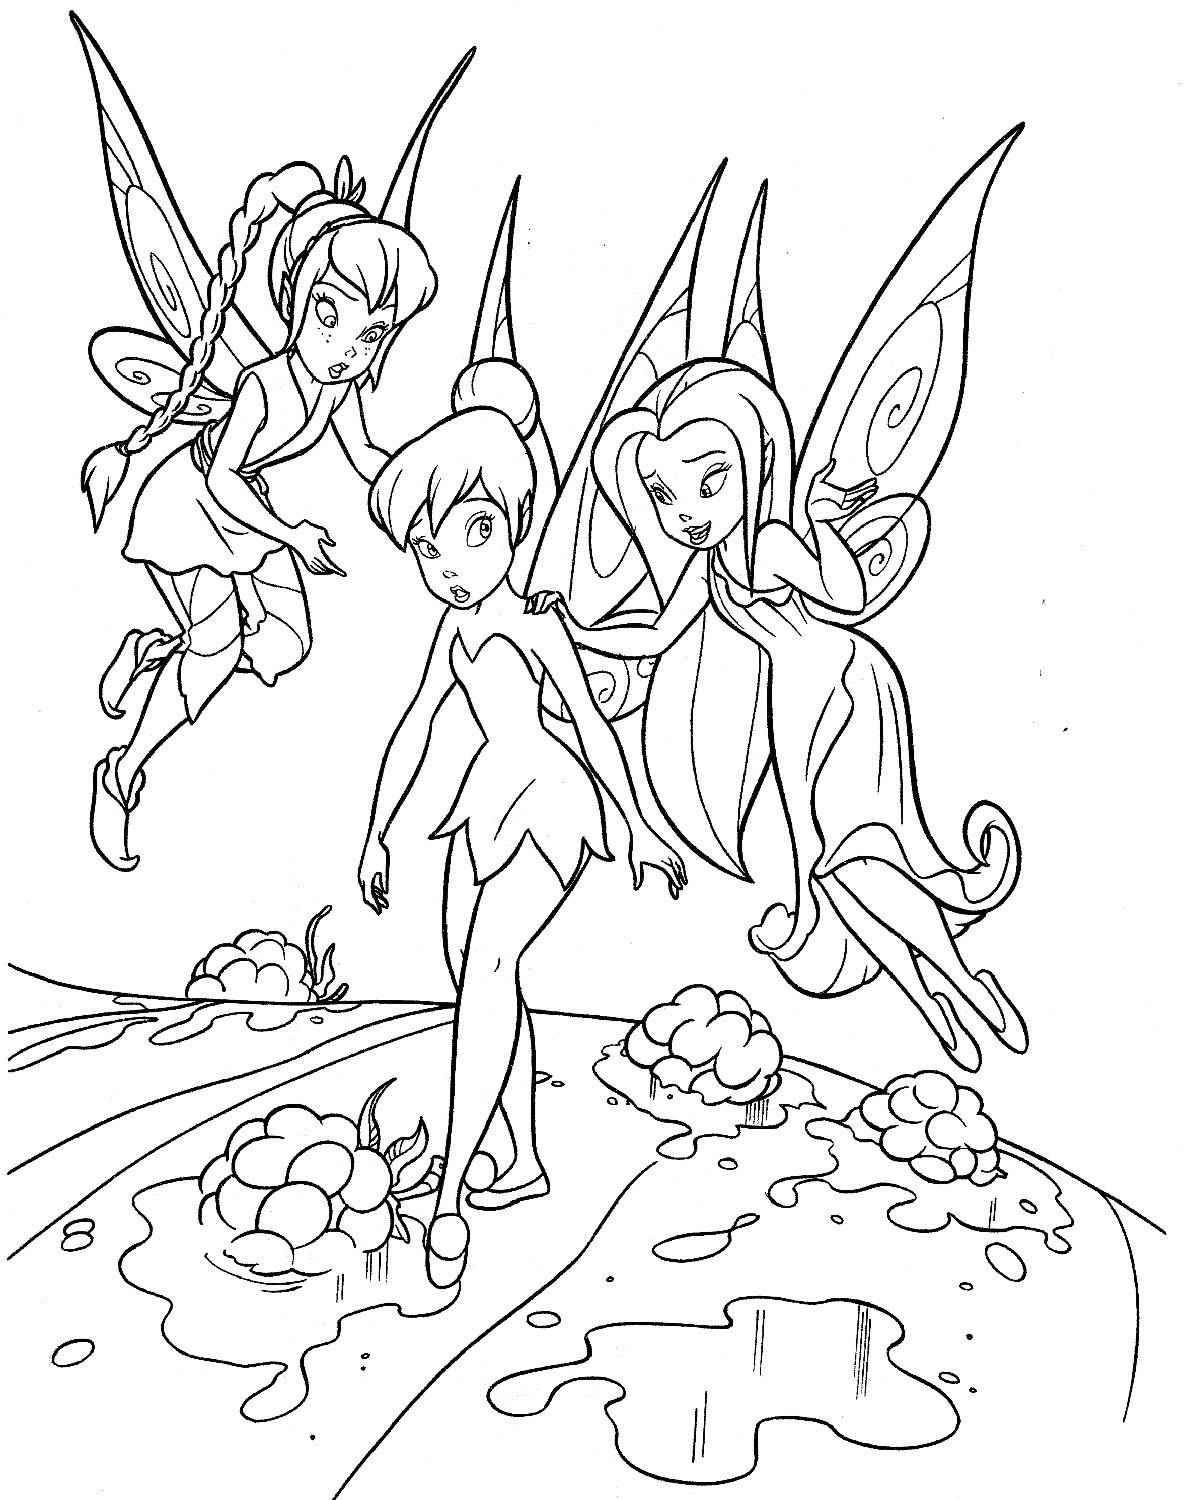 Tinkerbell Coloring Pages Beauteous Tinkerbell Coloring Pages 22  Coloring Kids Inspiration Design